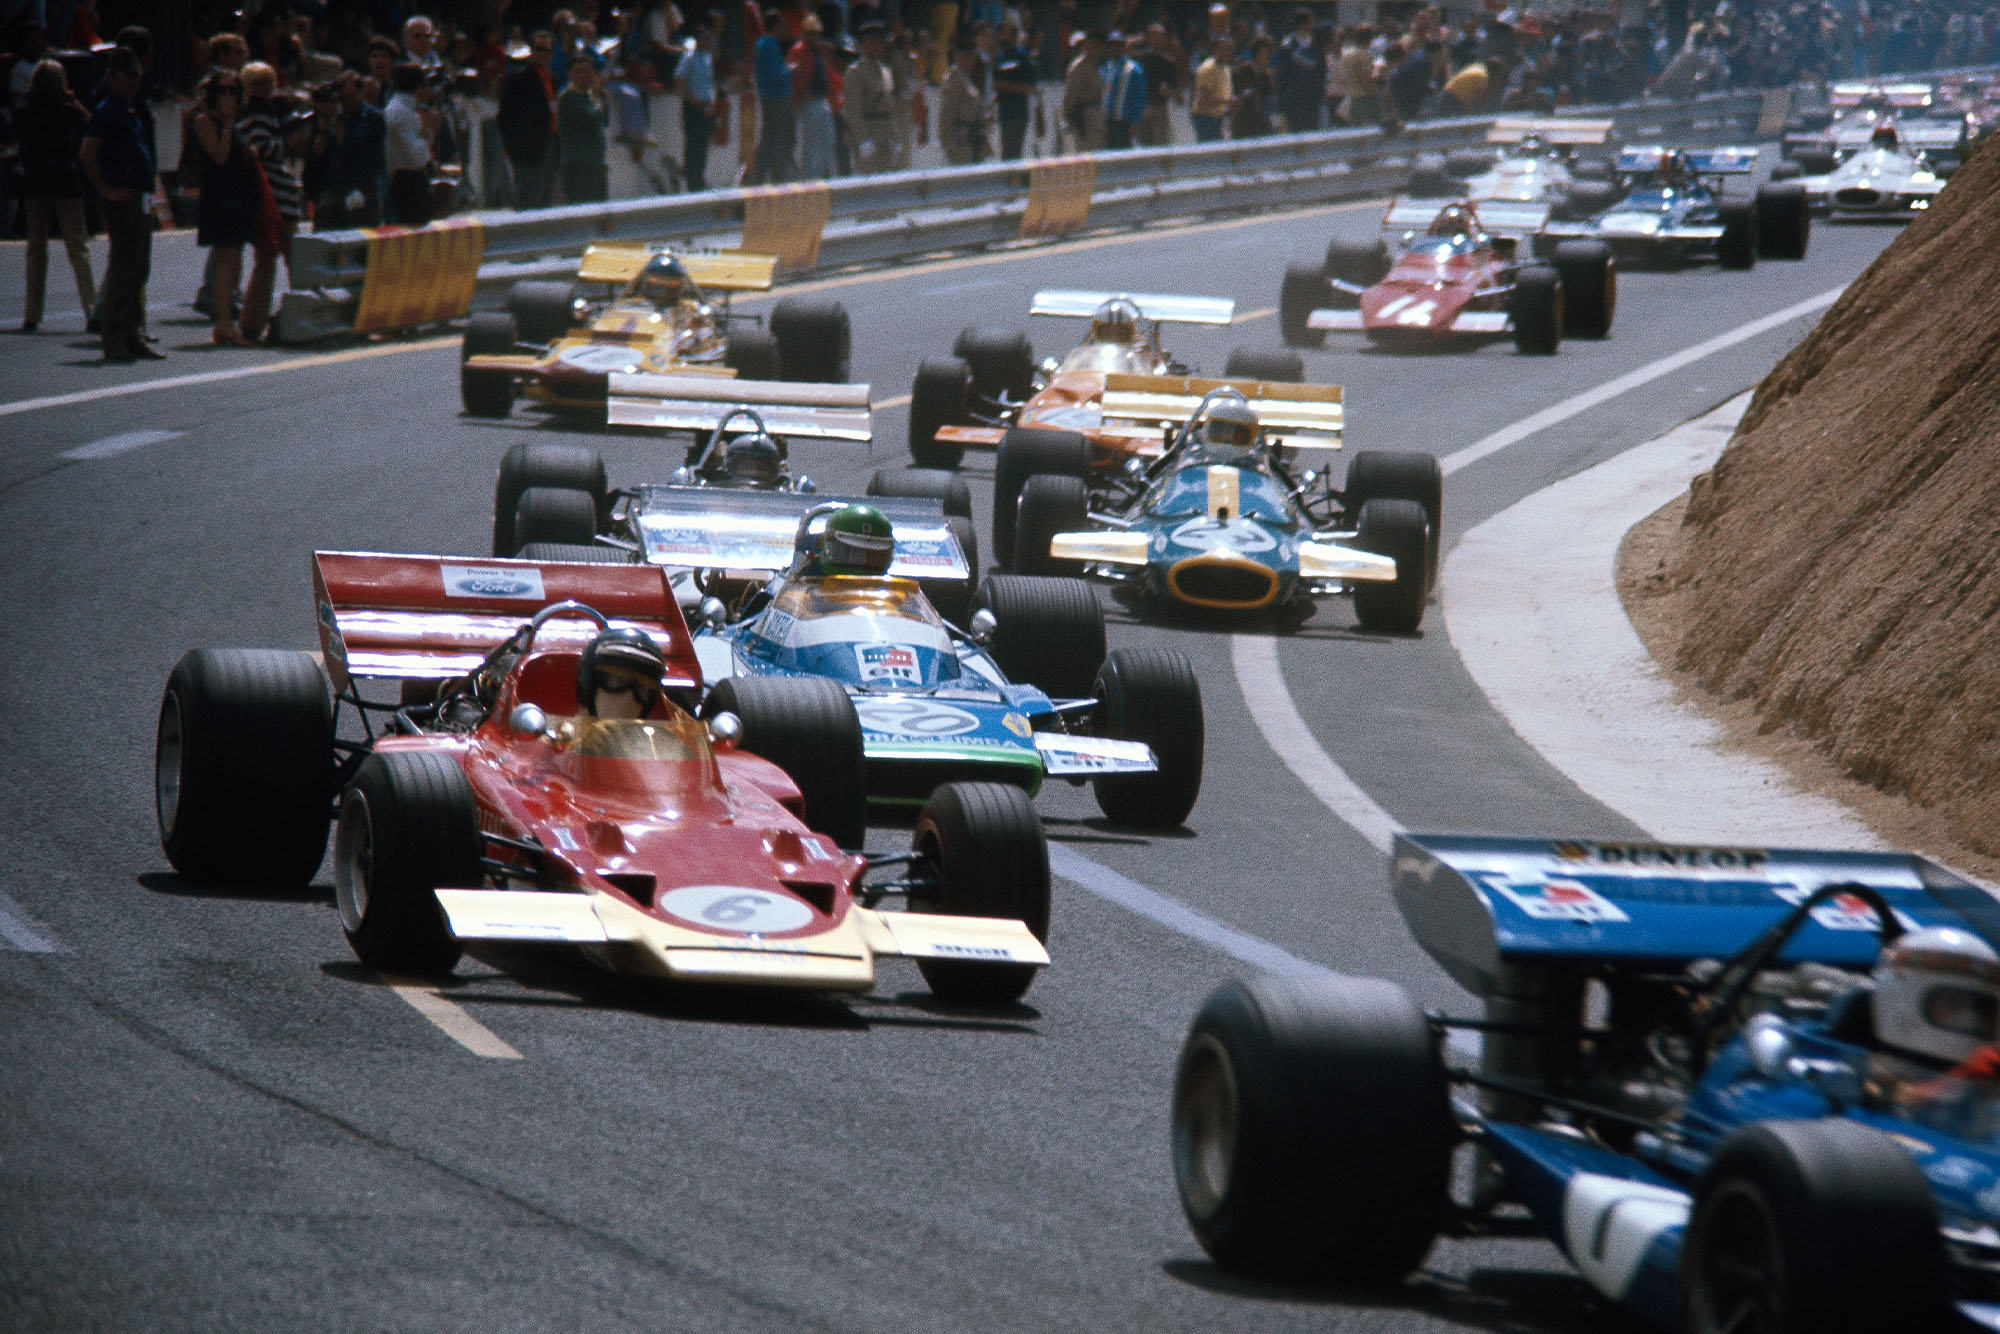 The 1970 French Grand Prix starts